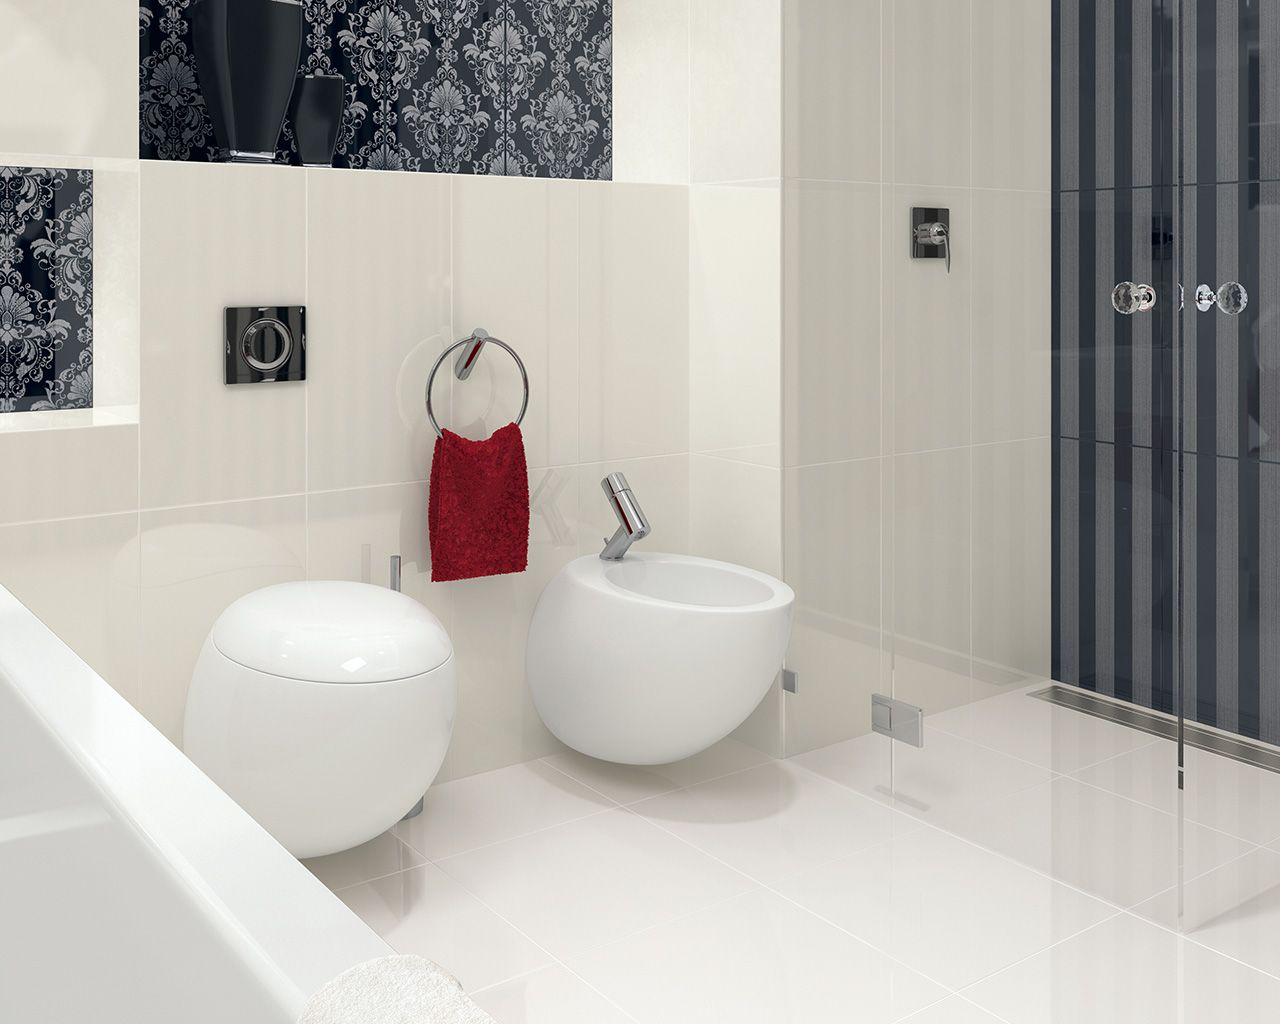 Bellicita Purio Bathroom Tiles White Black And Red